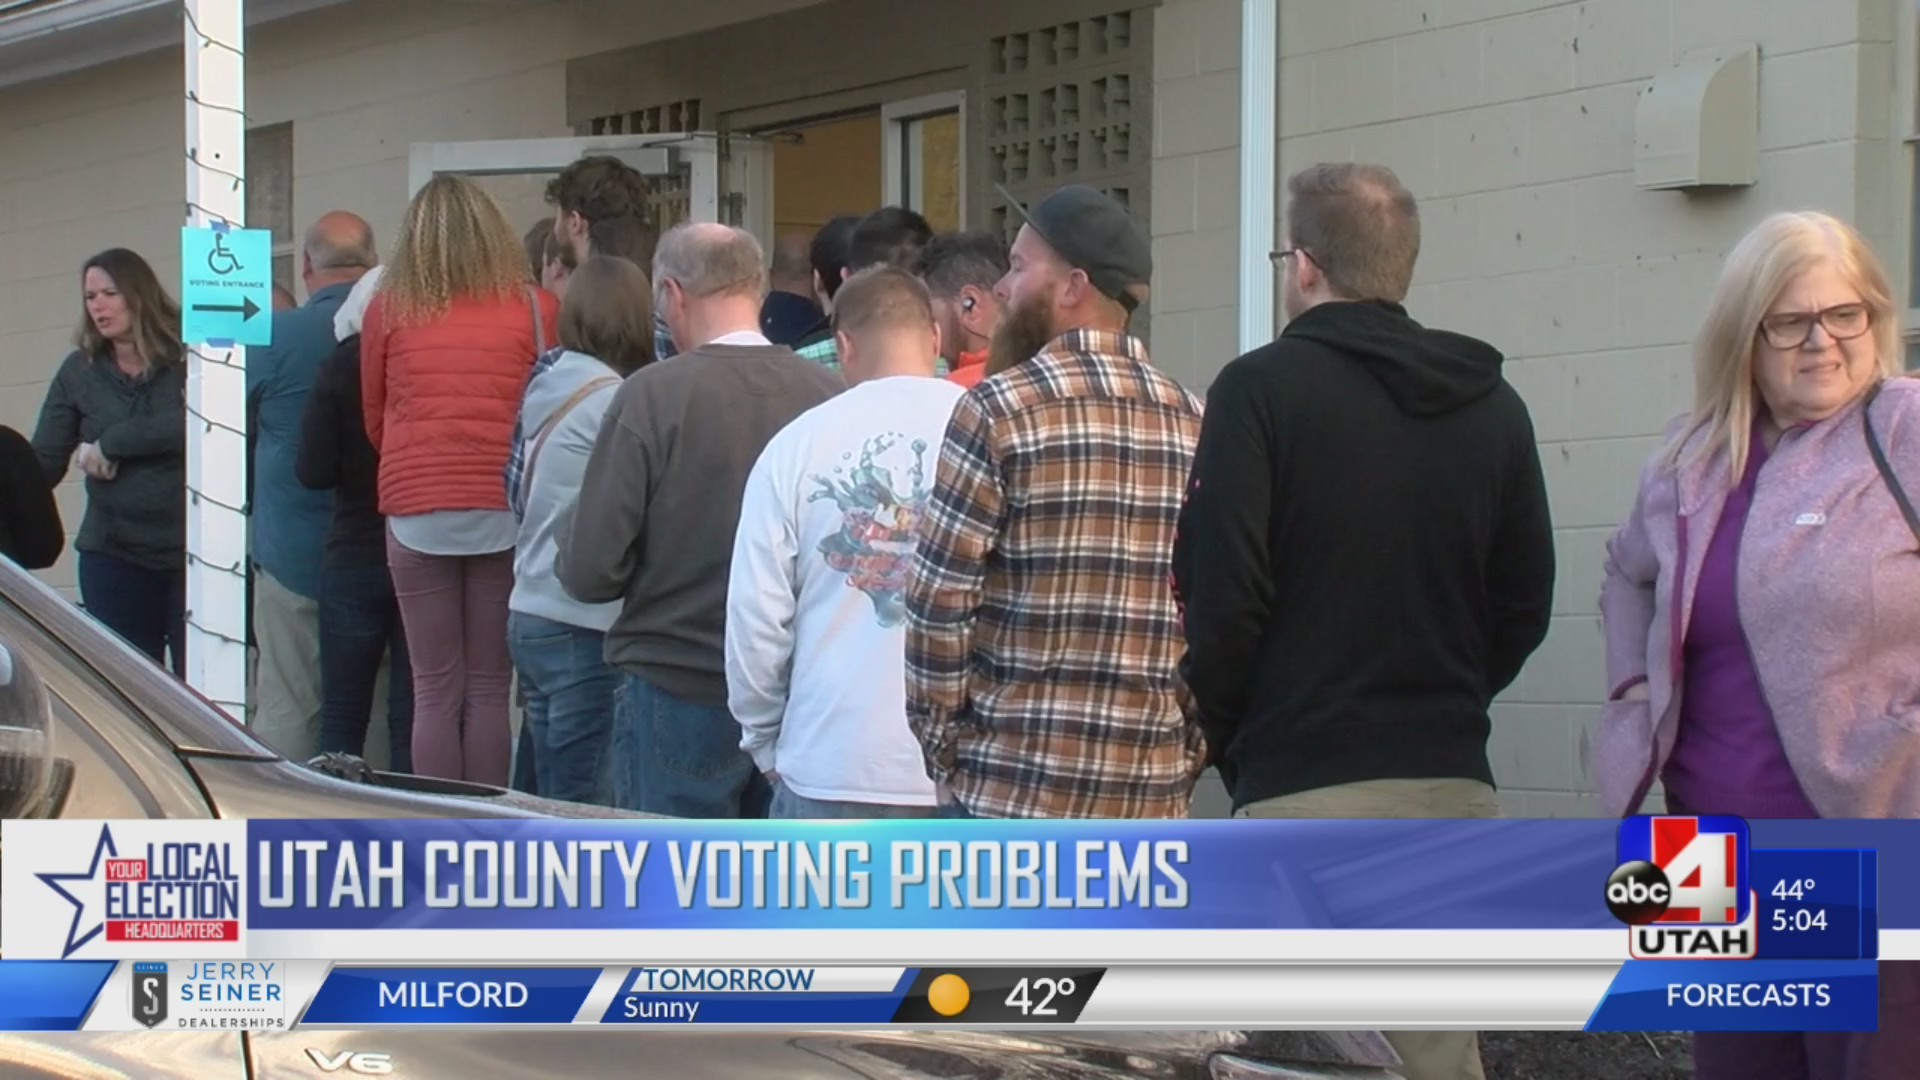 Utah County Voting Problems